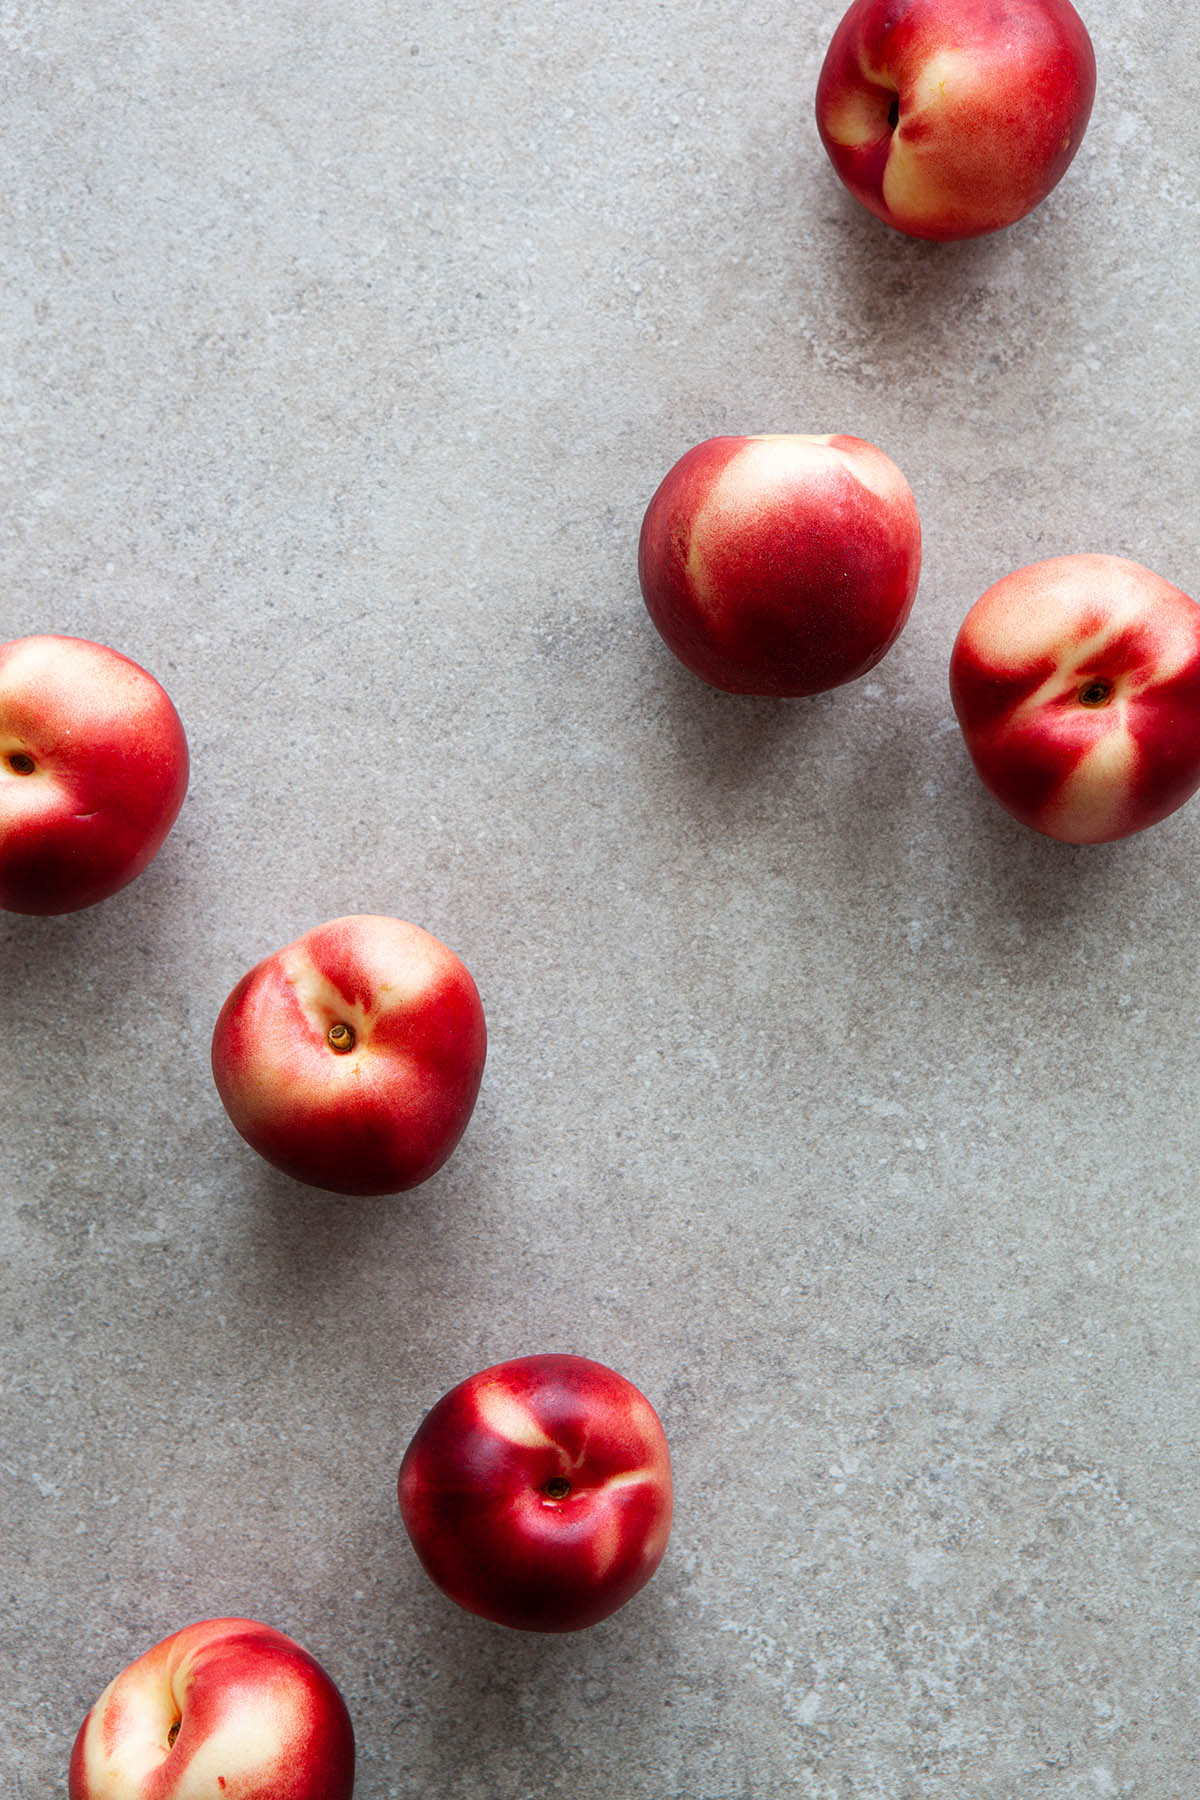 Seven nectarines on a stone background.